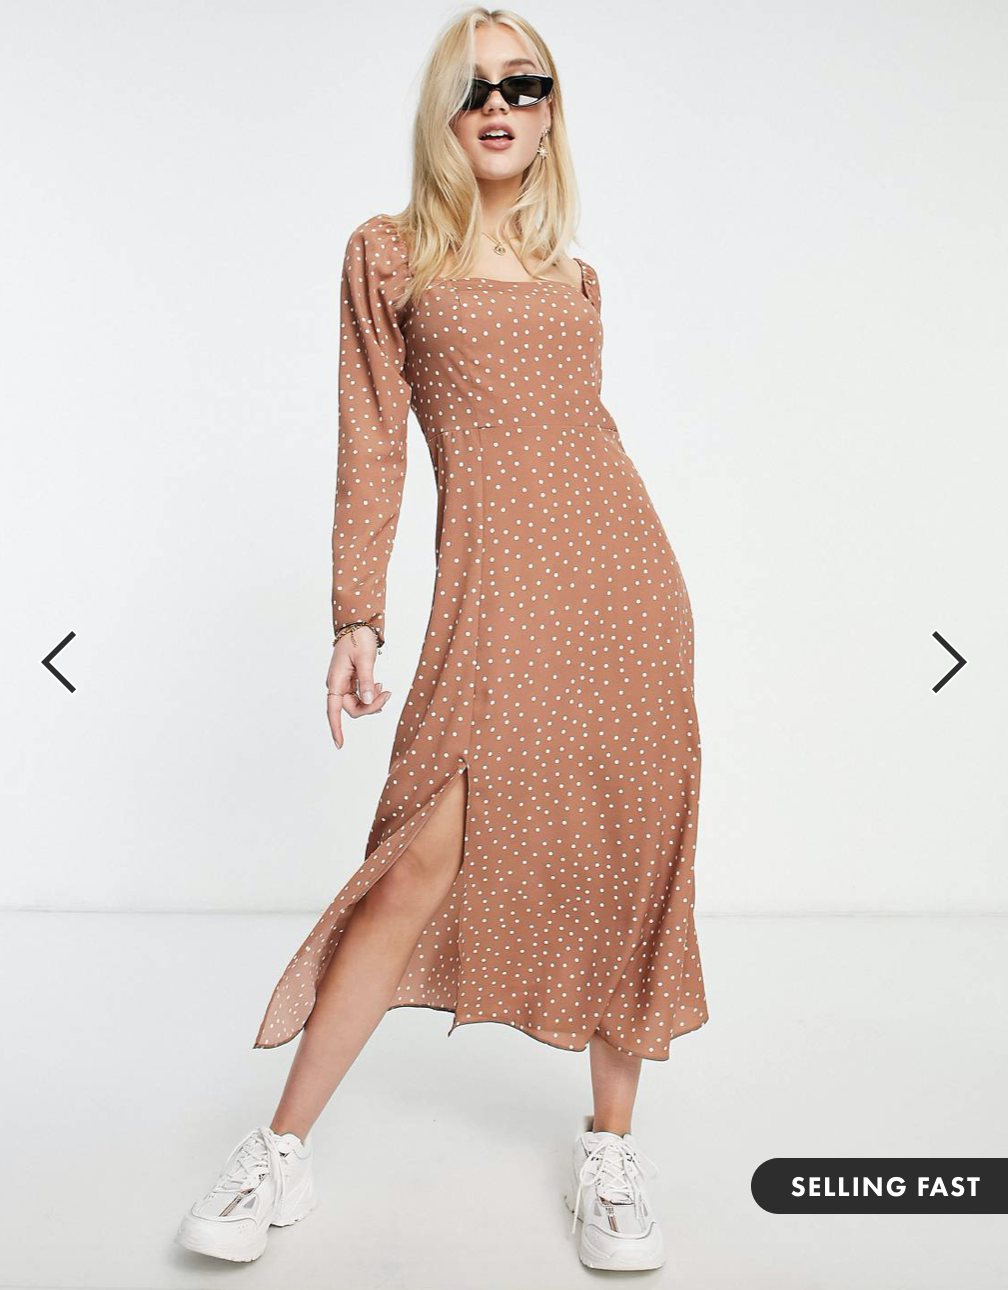 ASOS: Up to 80% off everything!